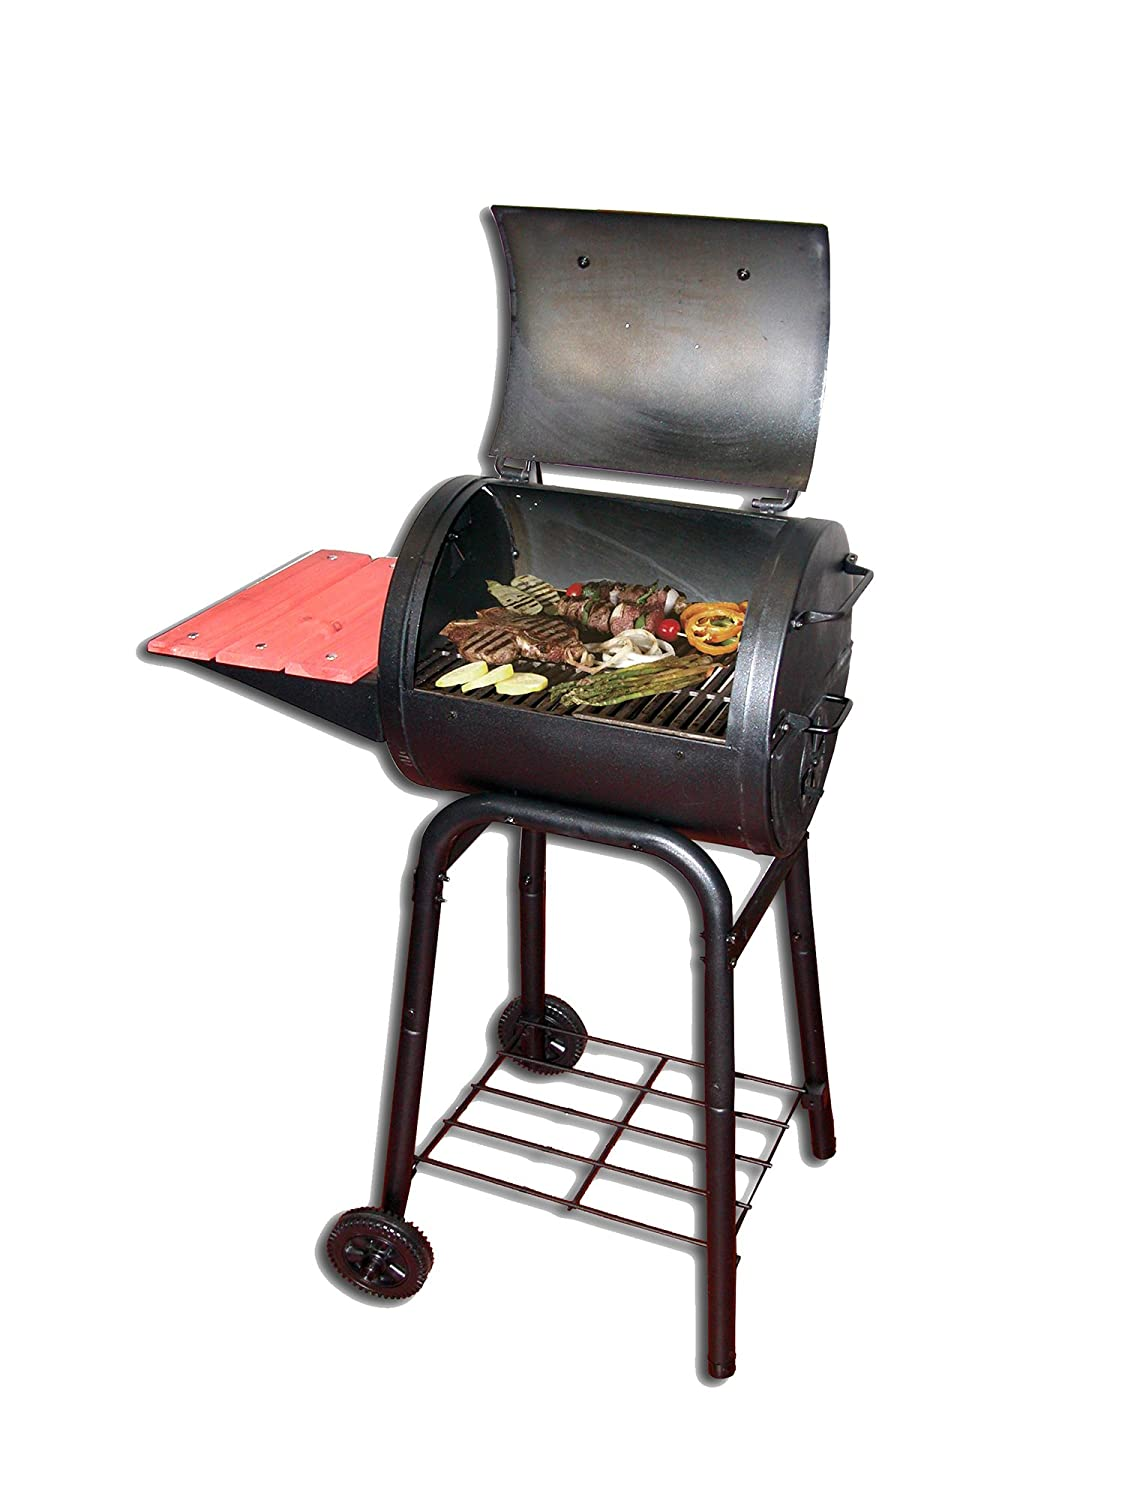 CHARGRILLER M110356 - Barbacoa de carbon patio pro 1515 numero 1 en usa: Amazon.es: Jardín